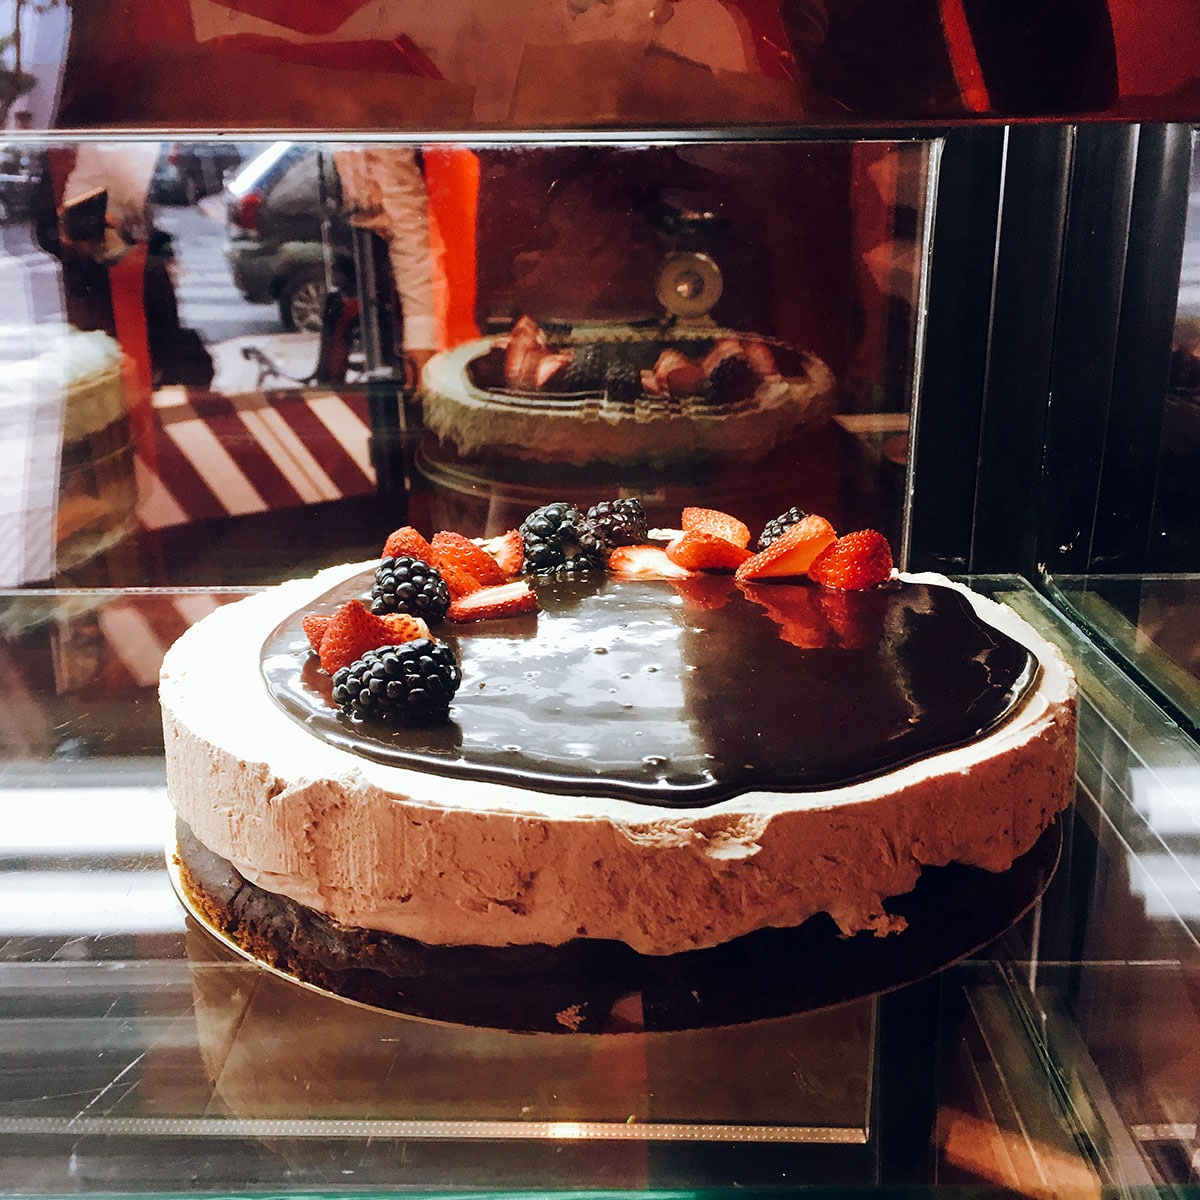 vegan cake on display at Sablée Vegana